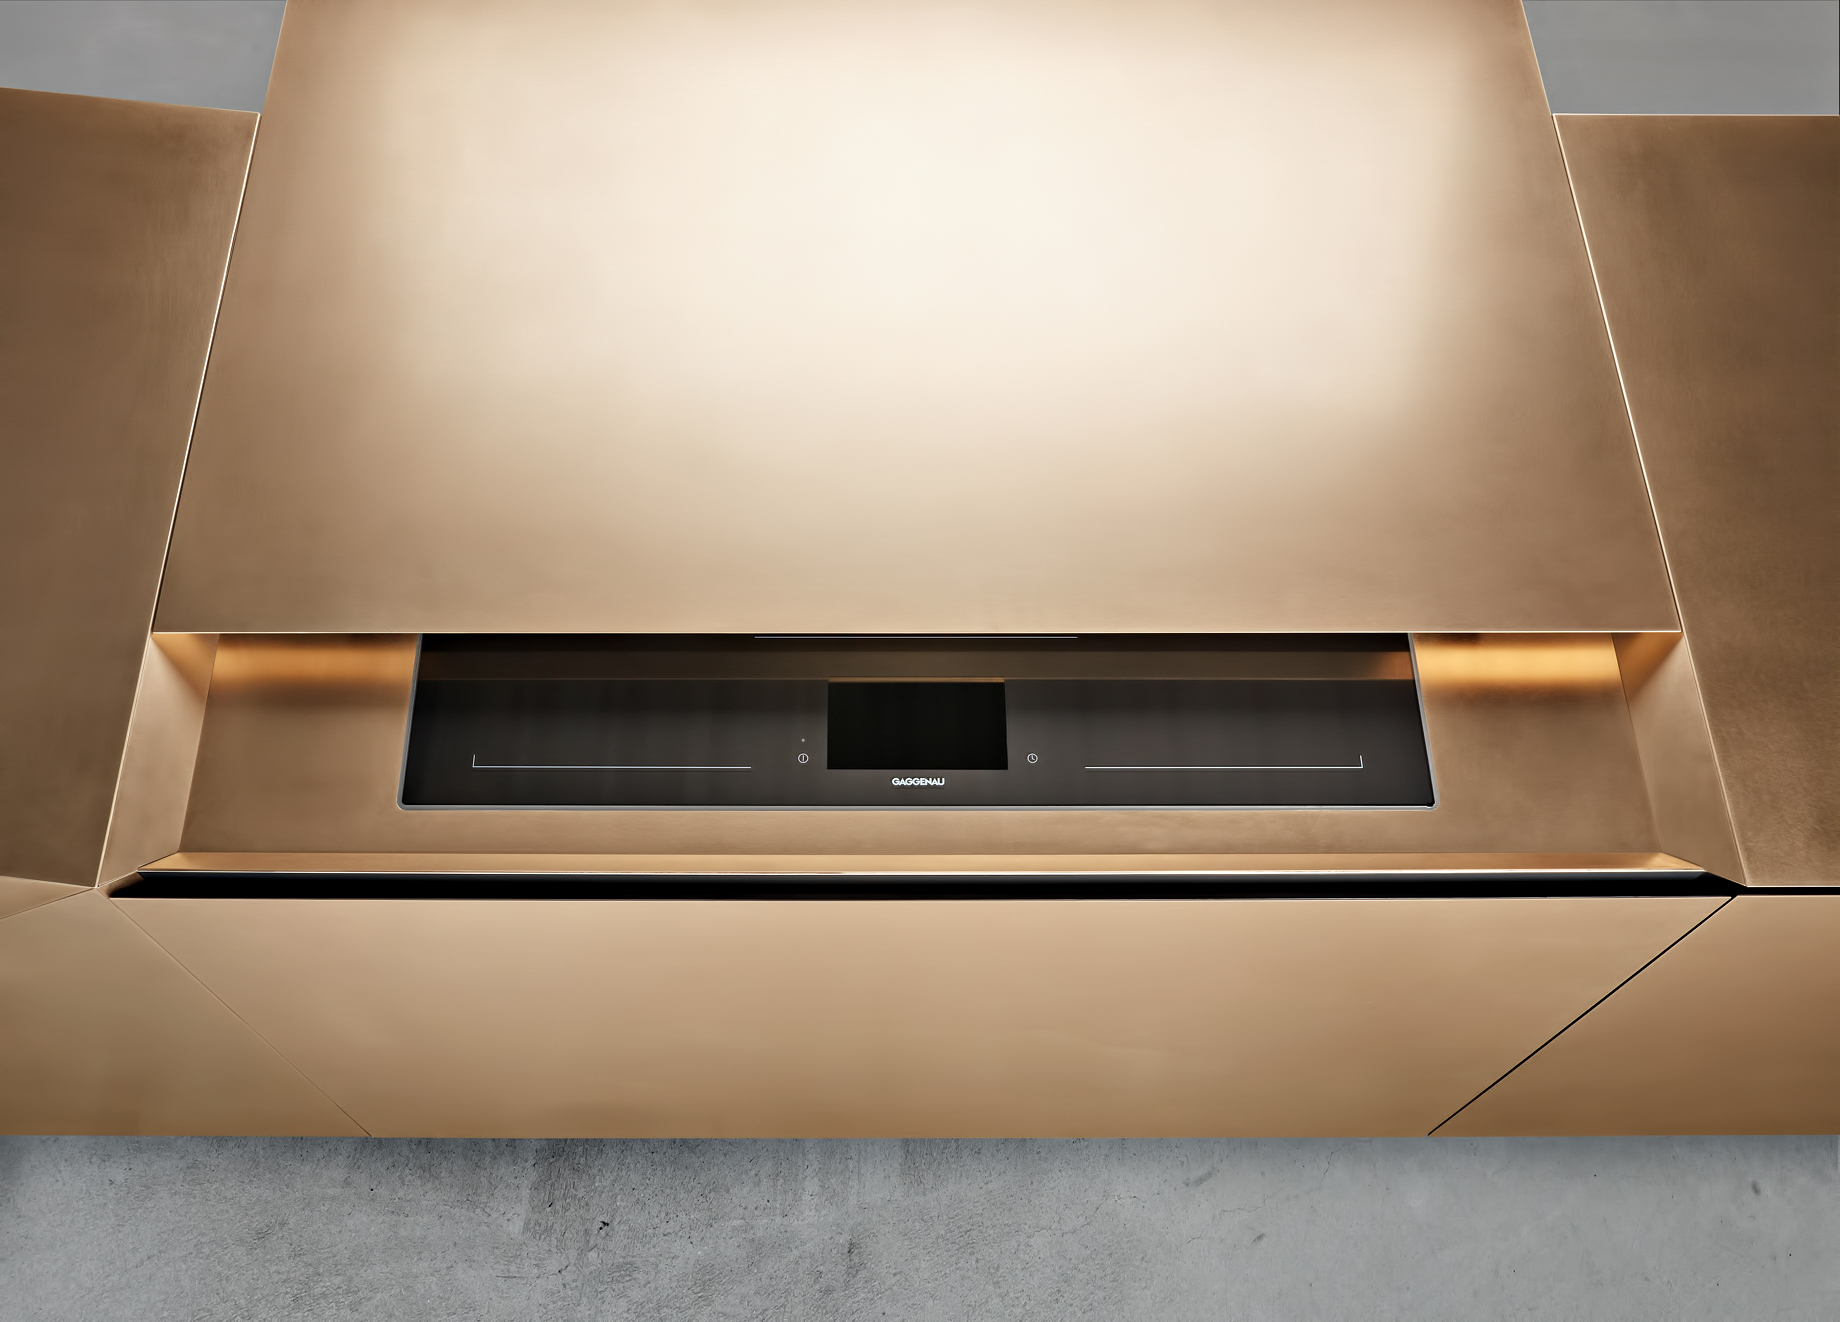 Iconic Steininger FOLD High Tech Kitchen Block Design Inspired by Origami - Actuation of the motion sensor reveals the hob